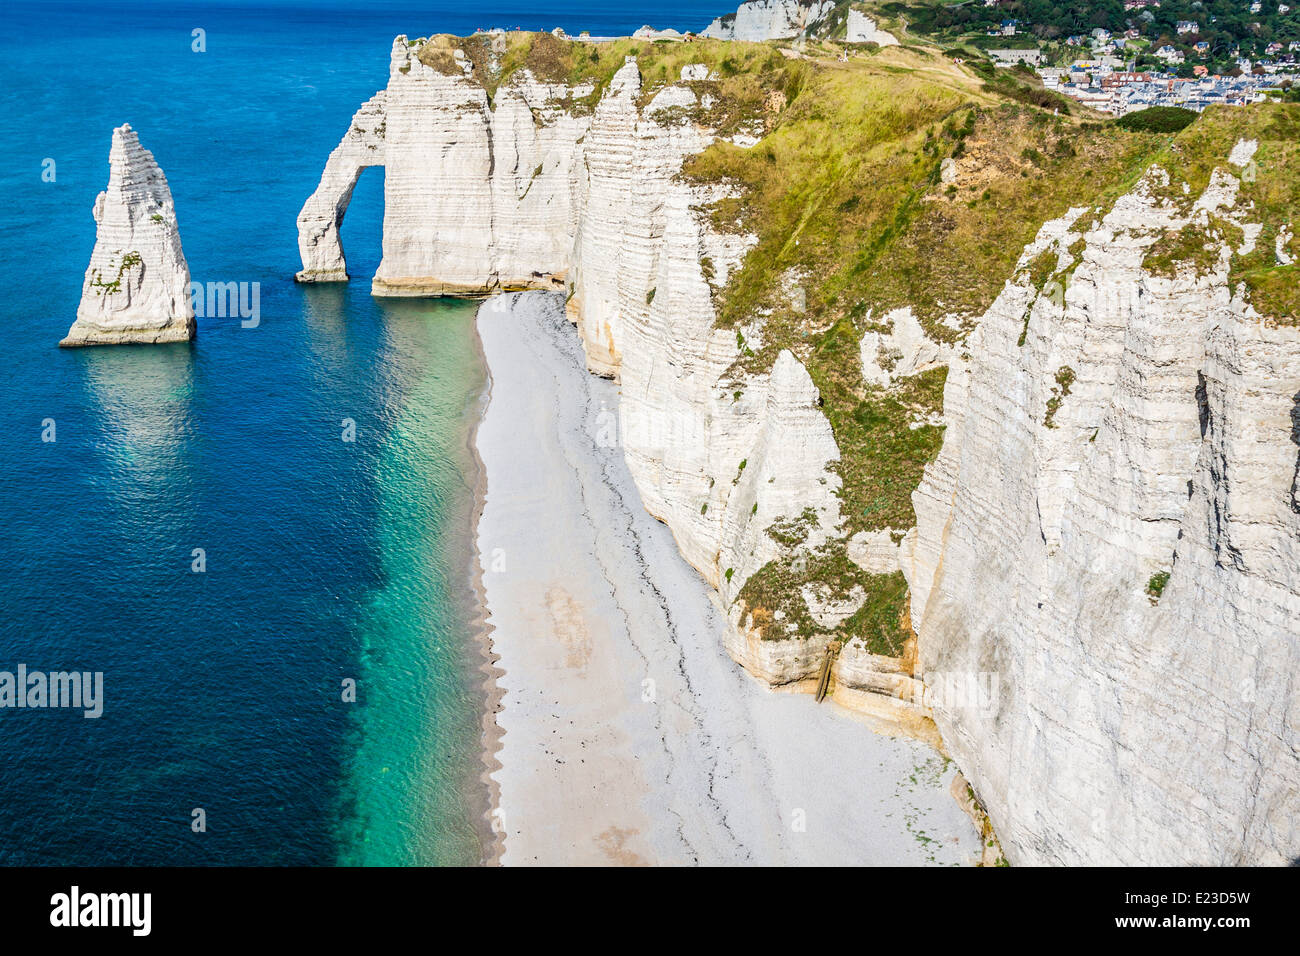 The famous cliffs at Etretat in Normandy, France - Stock Image